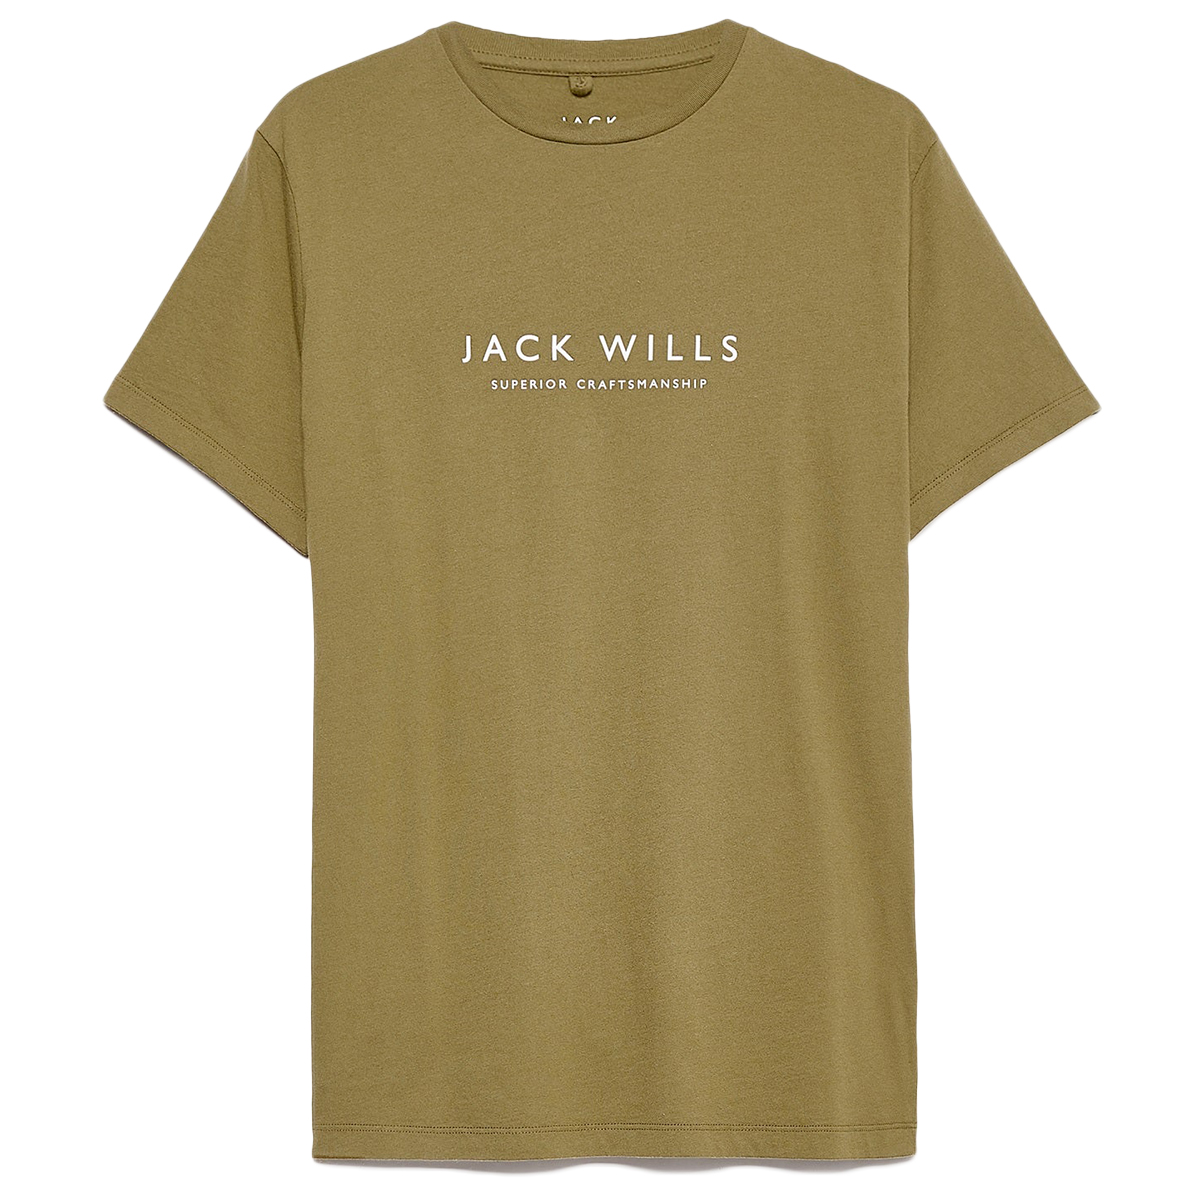 Jack Wills Men's Short-Sleeve Westmore Color-Block Tee - Green, L